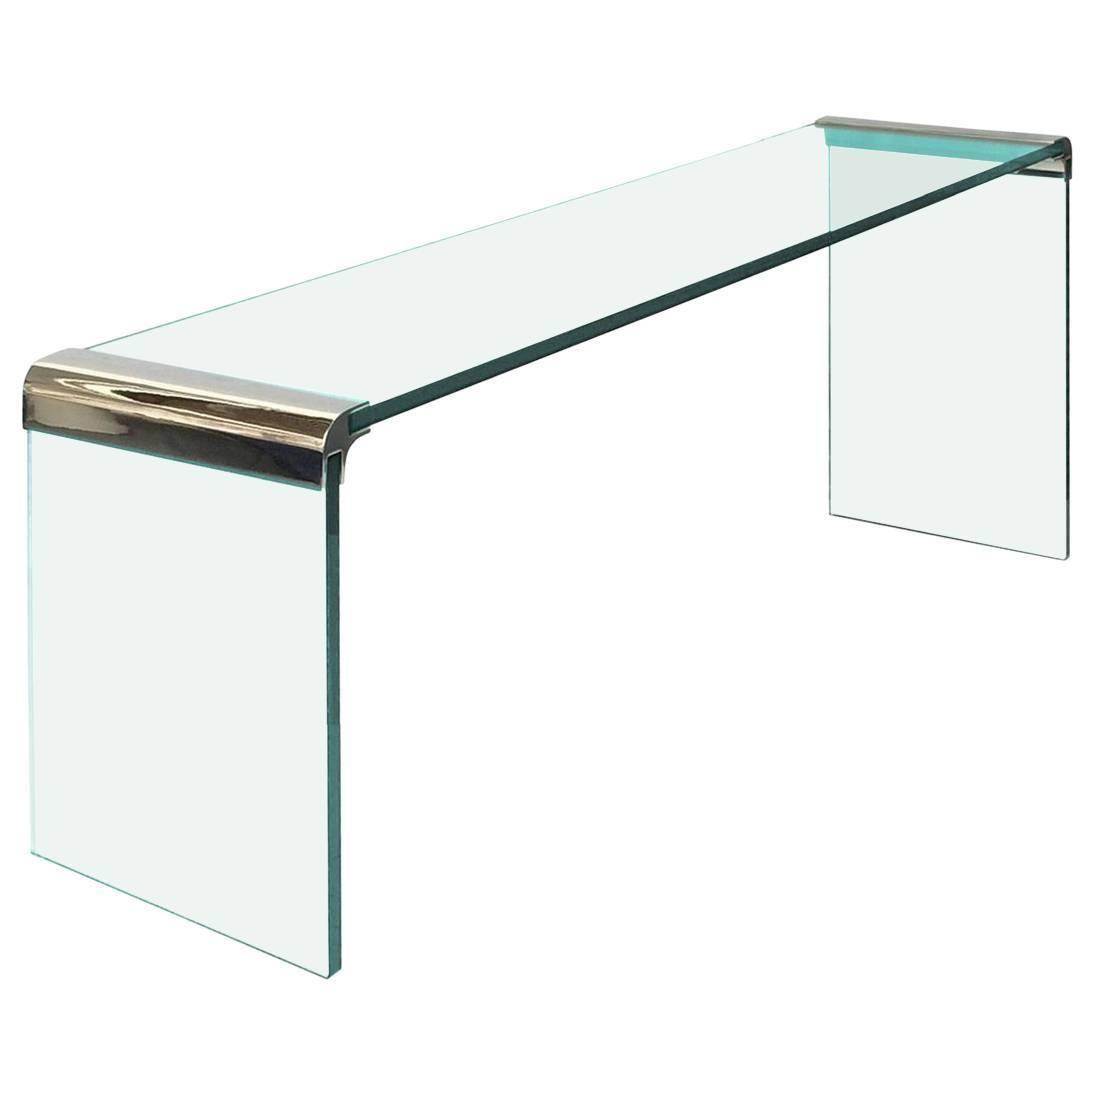 Waterfall Console Table By Leon Rosen For Pace In Polished Nickel Glass Console Table Modern Console Tables Console Table